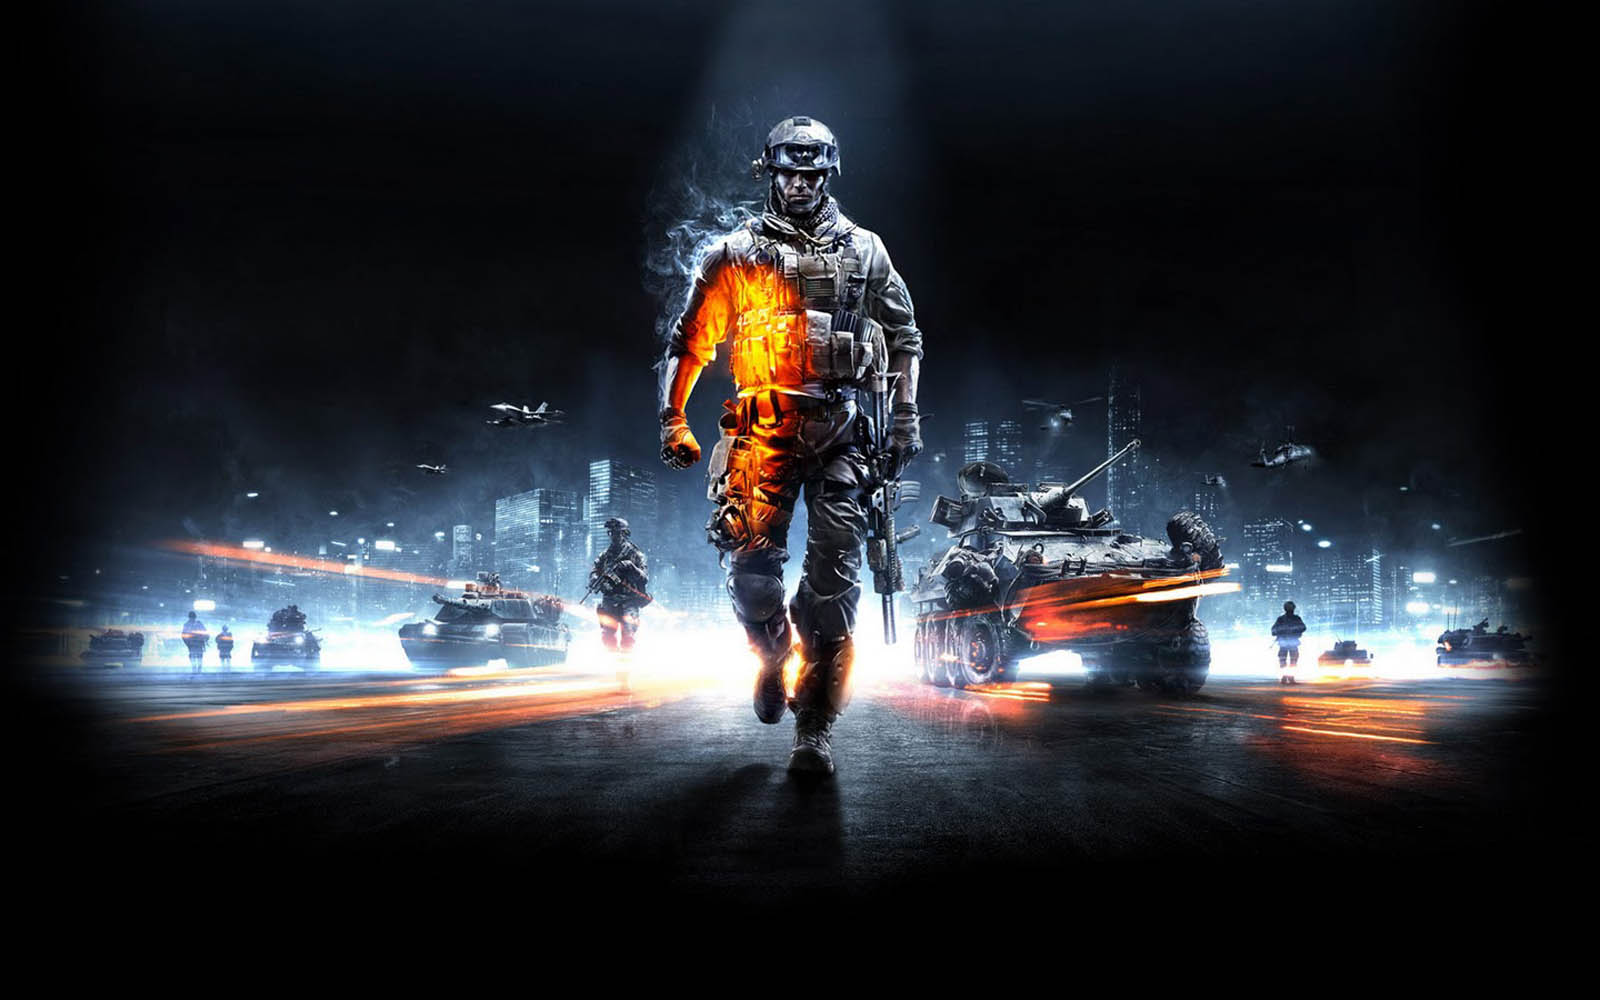 Battlefield+3+Game+Wallpapers+01.jpg